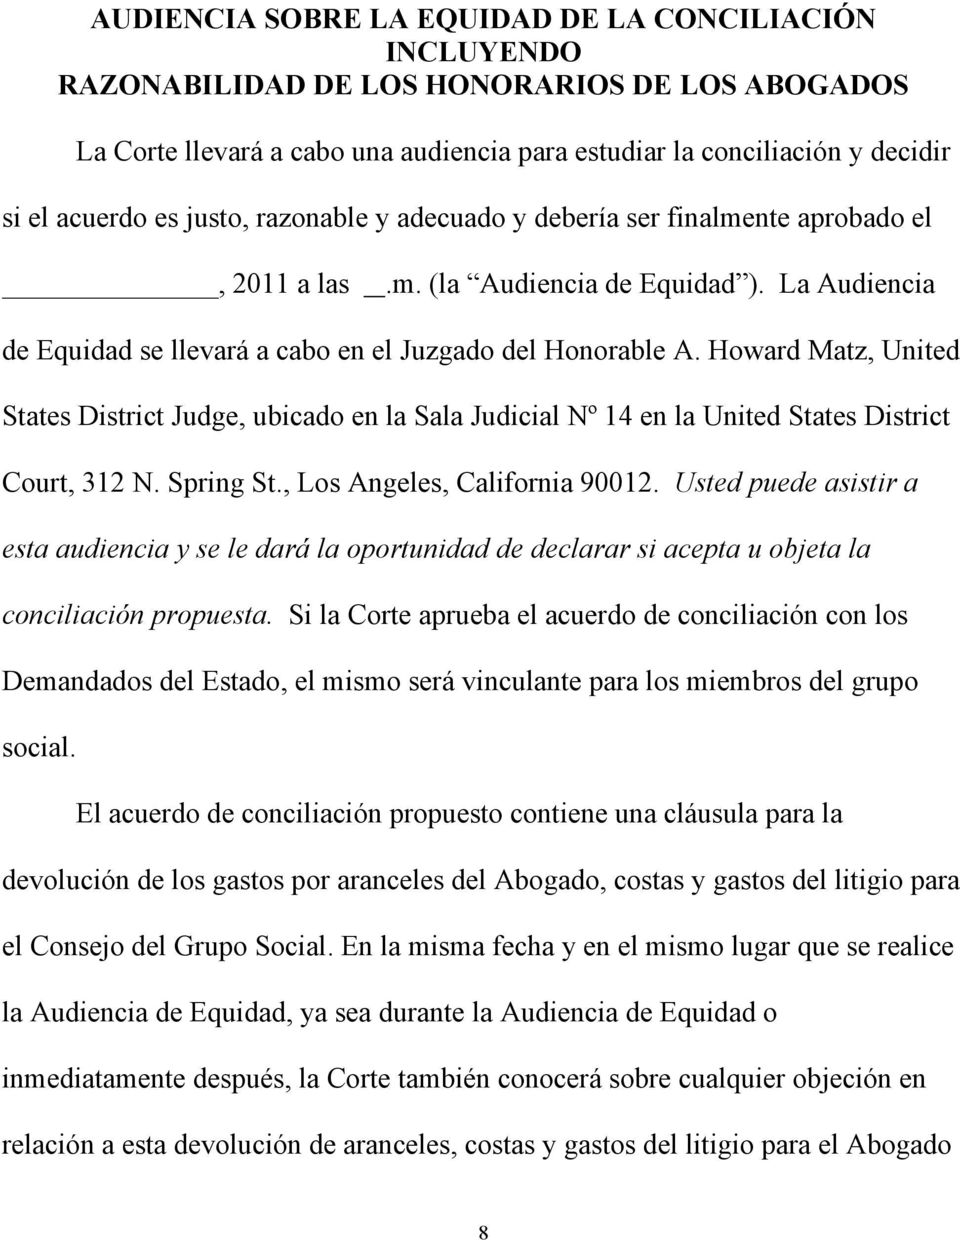 Howard Matz, United States District Judge, ubicado en la Sala Judicial Nº 14 en la United States District Court, 312 N. Spring St., Los Angeles, California 90012.